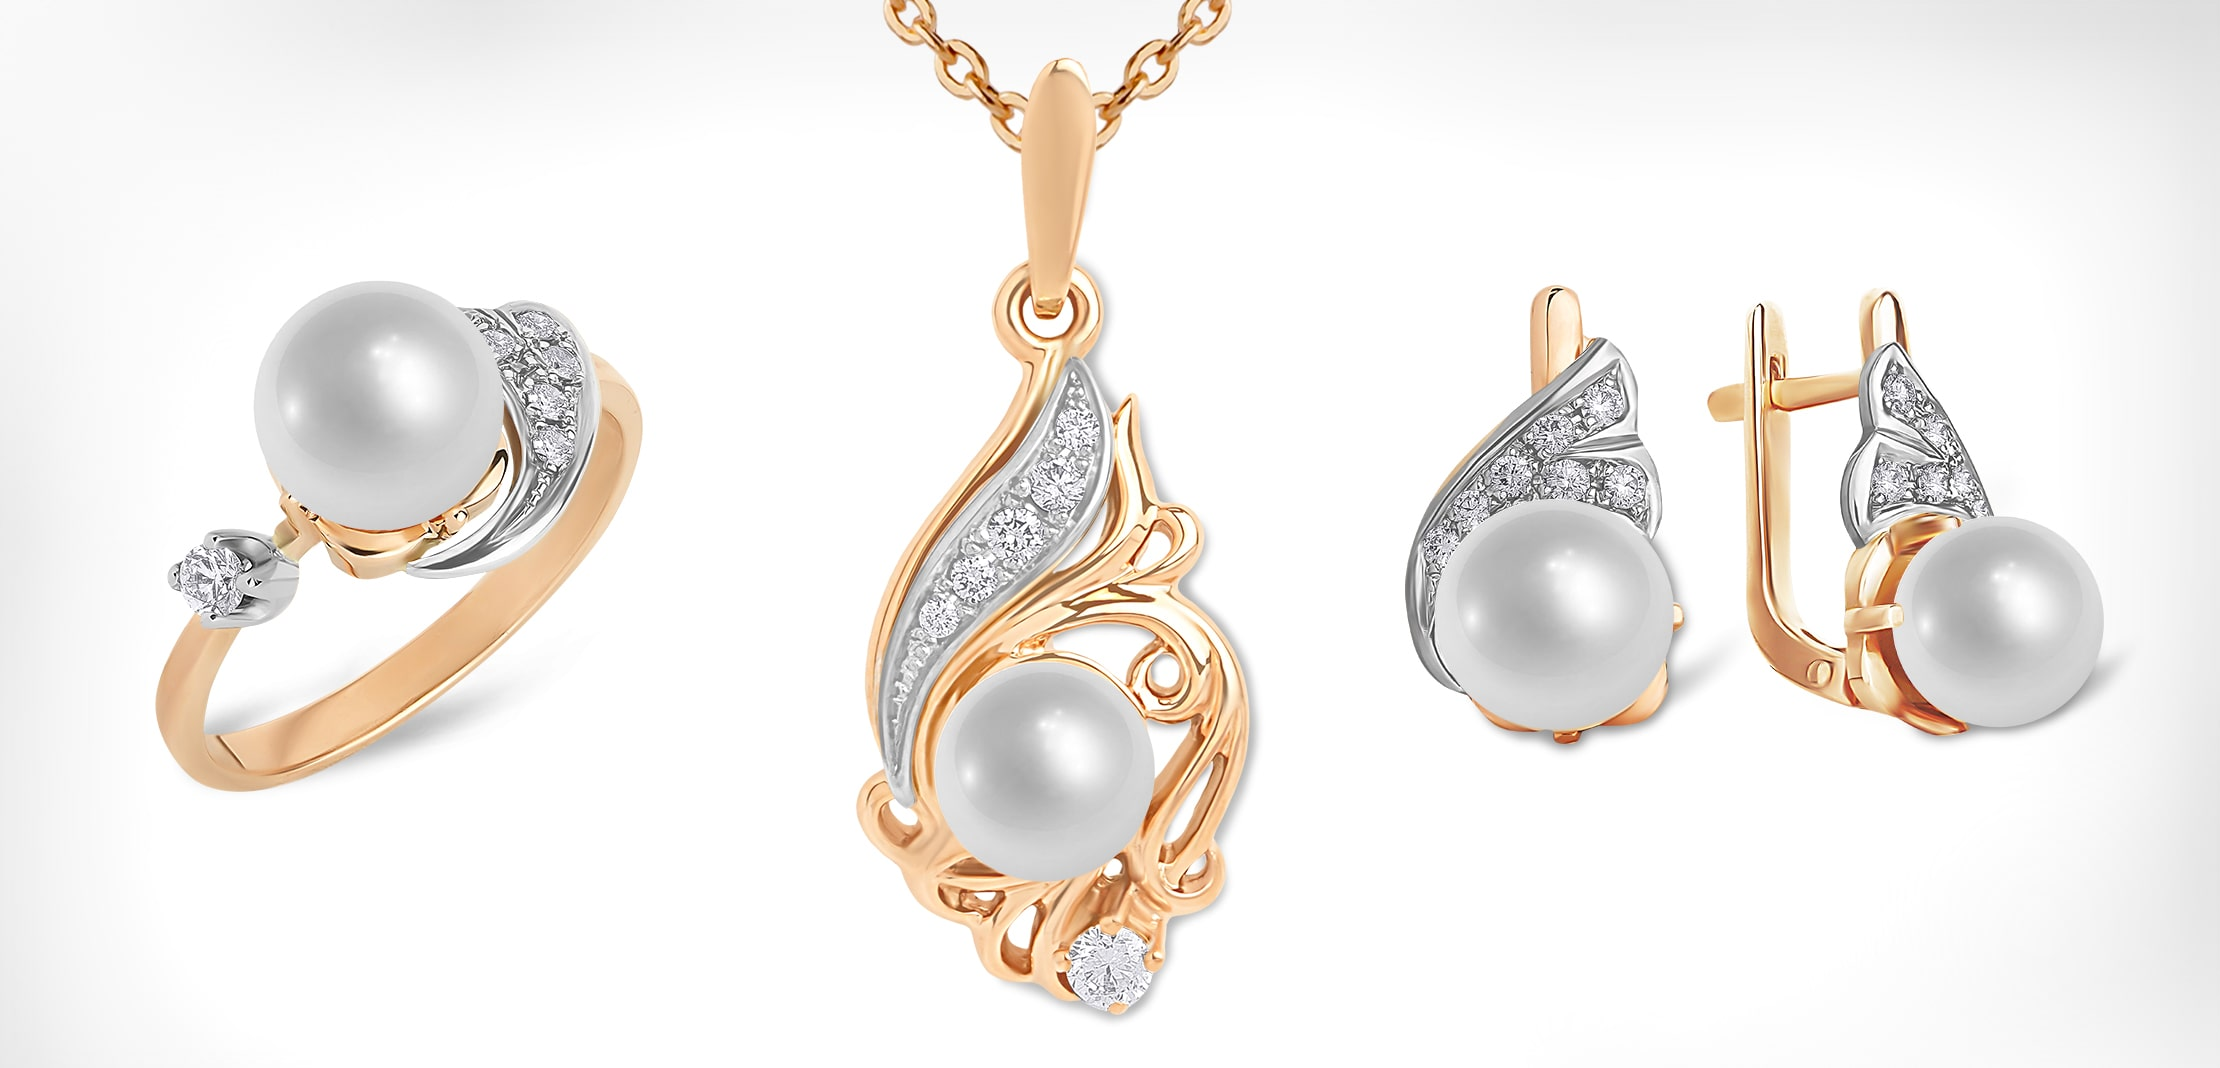 White Pearl Rose Gold Jewelry